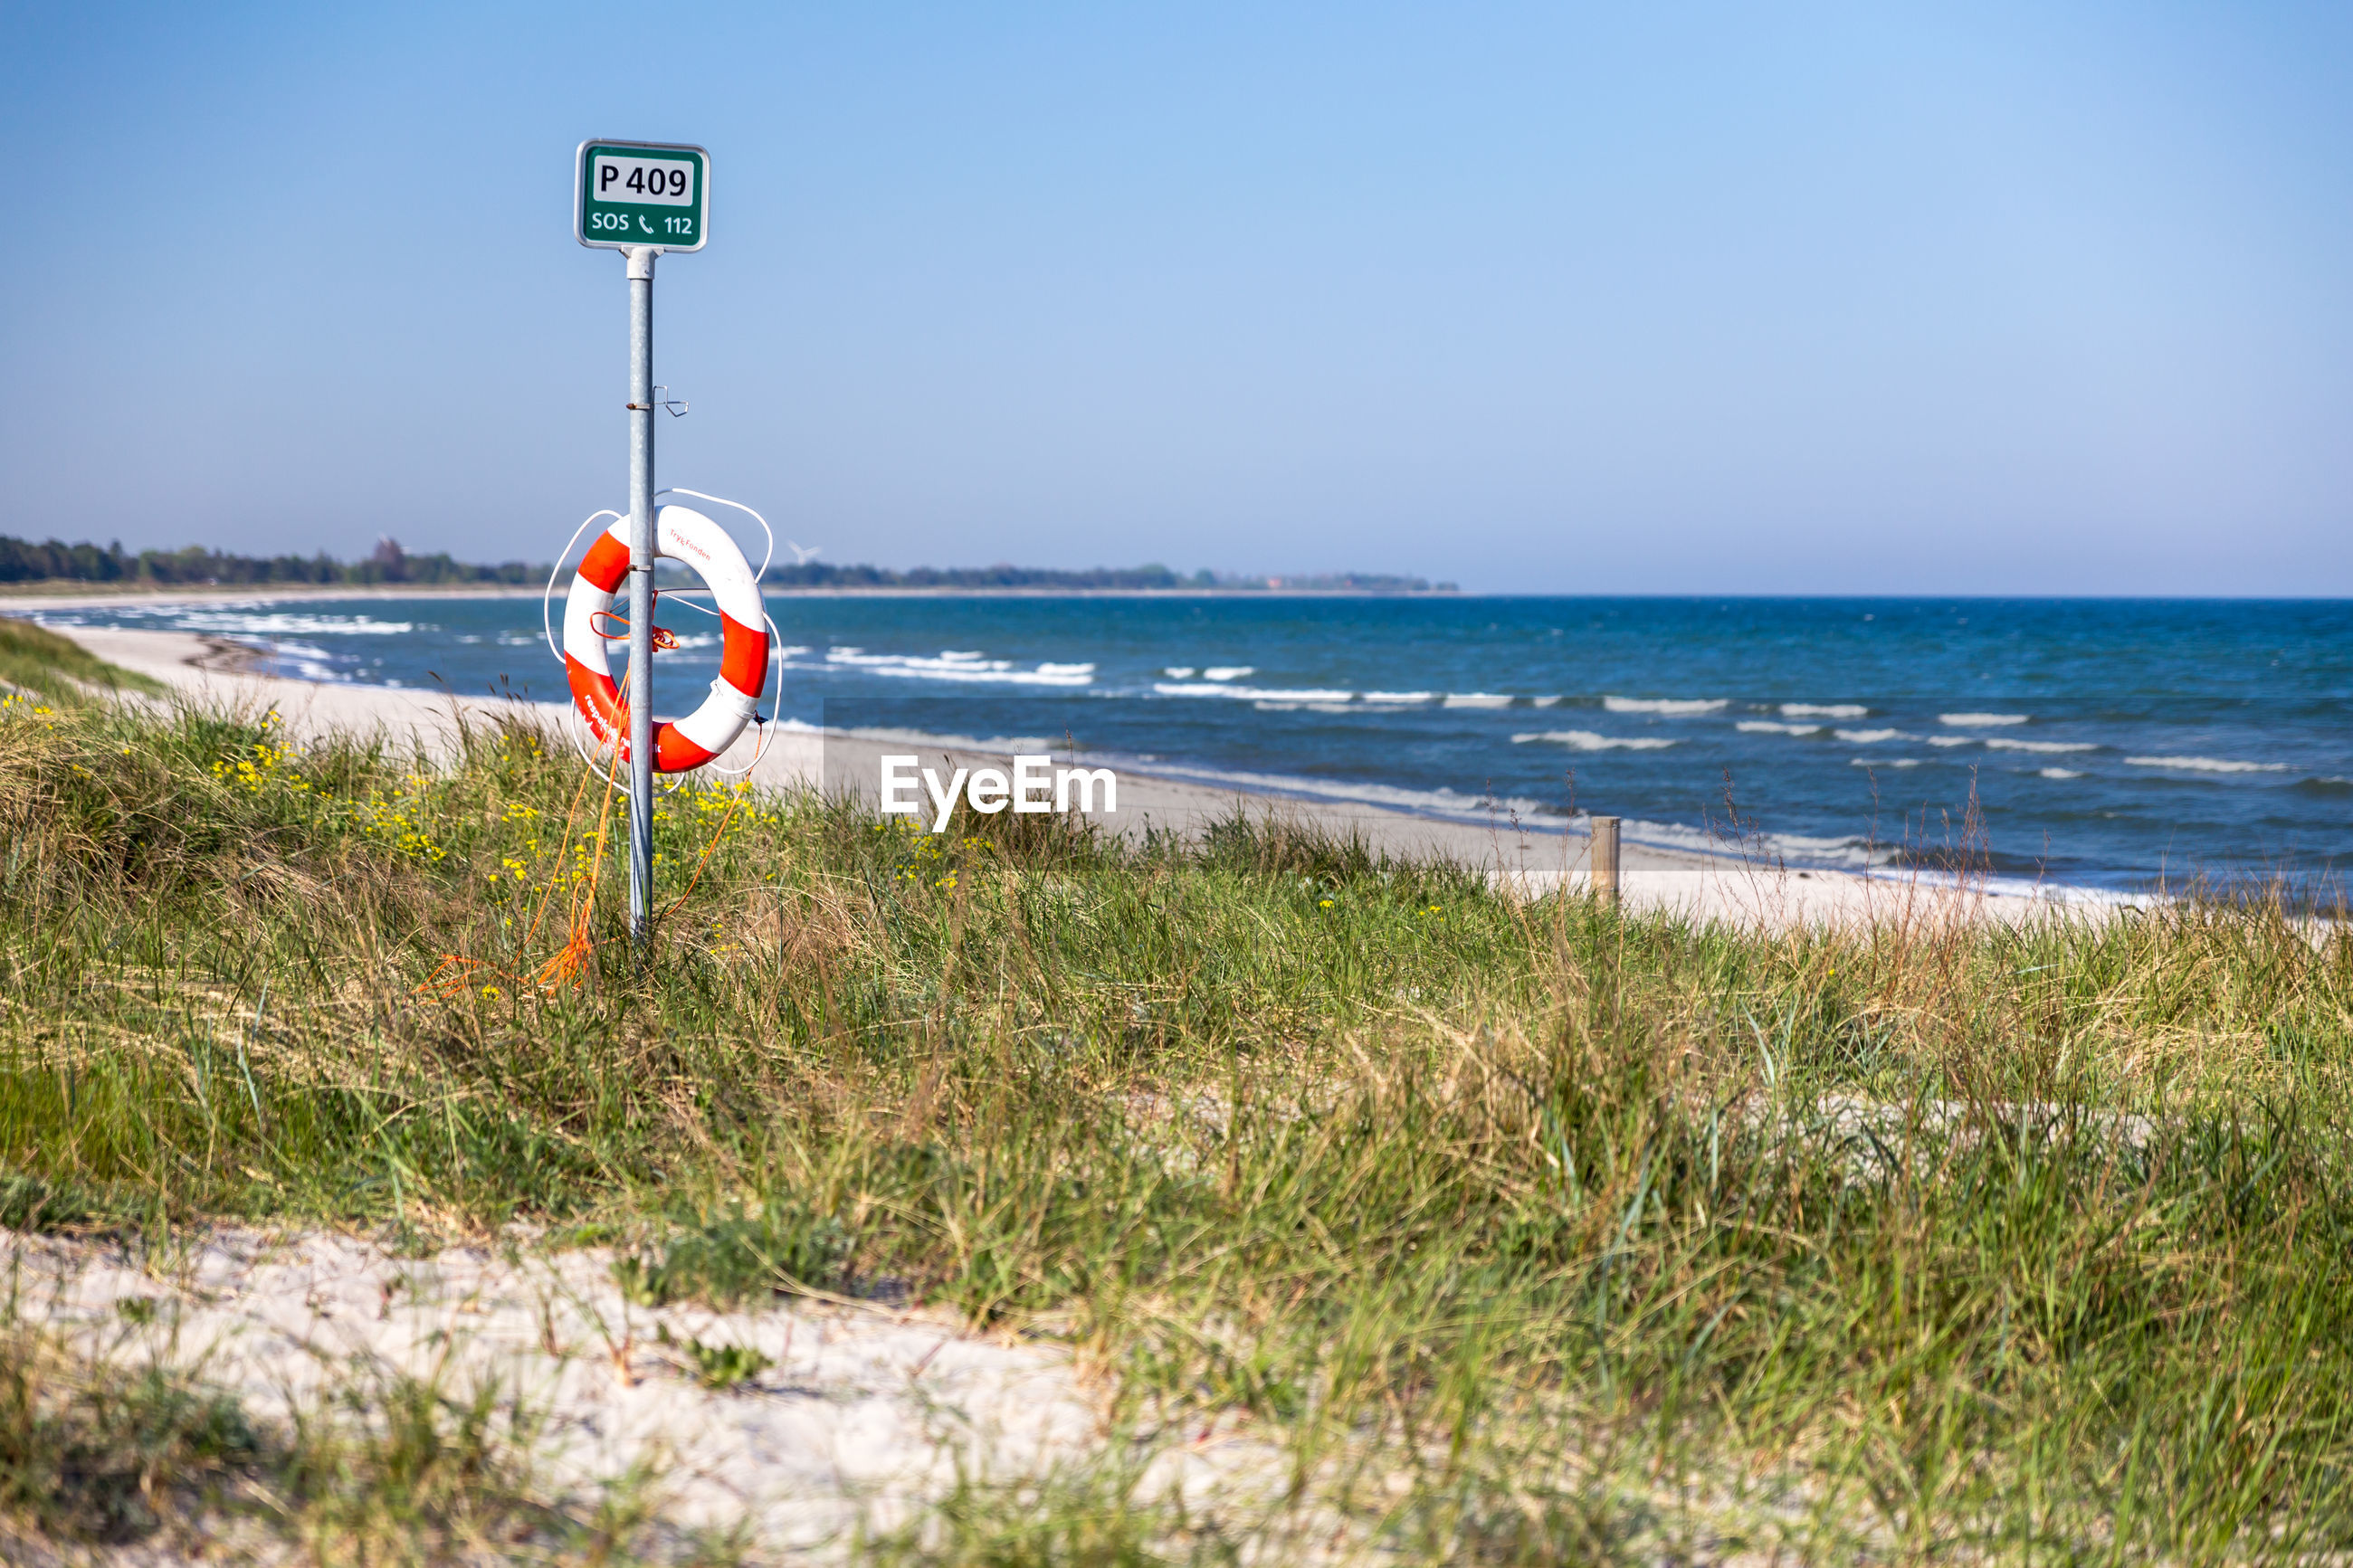 VIEW OF STOP SIGN ON BEACH